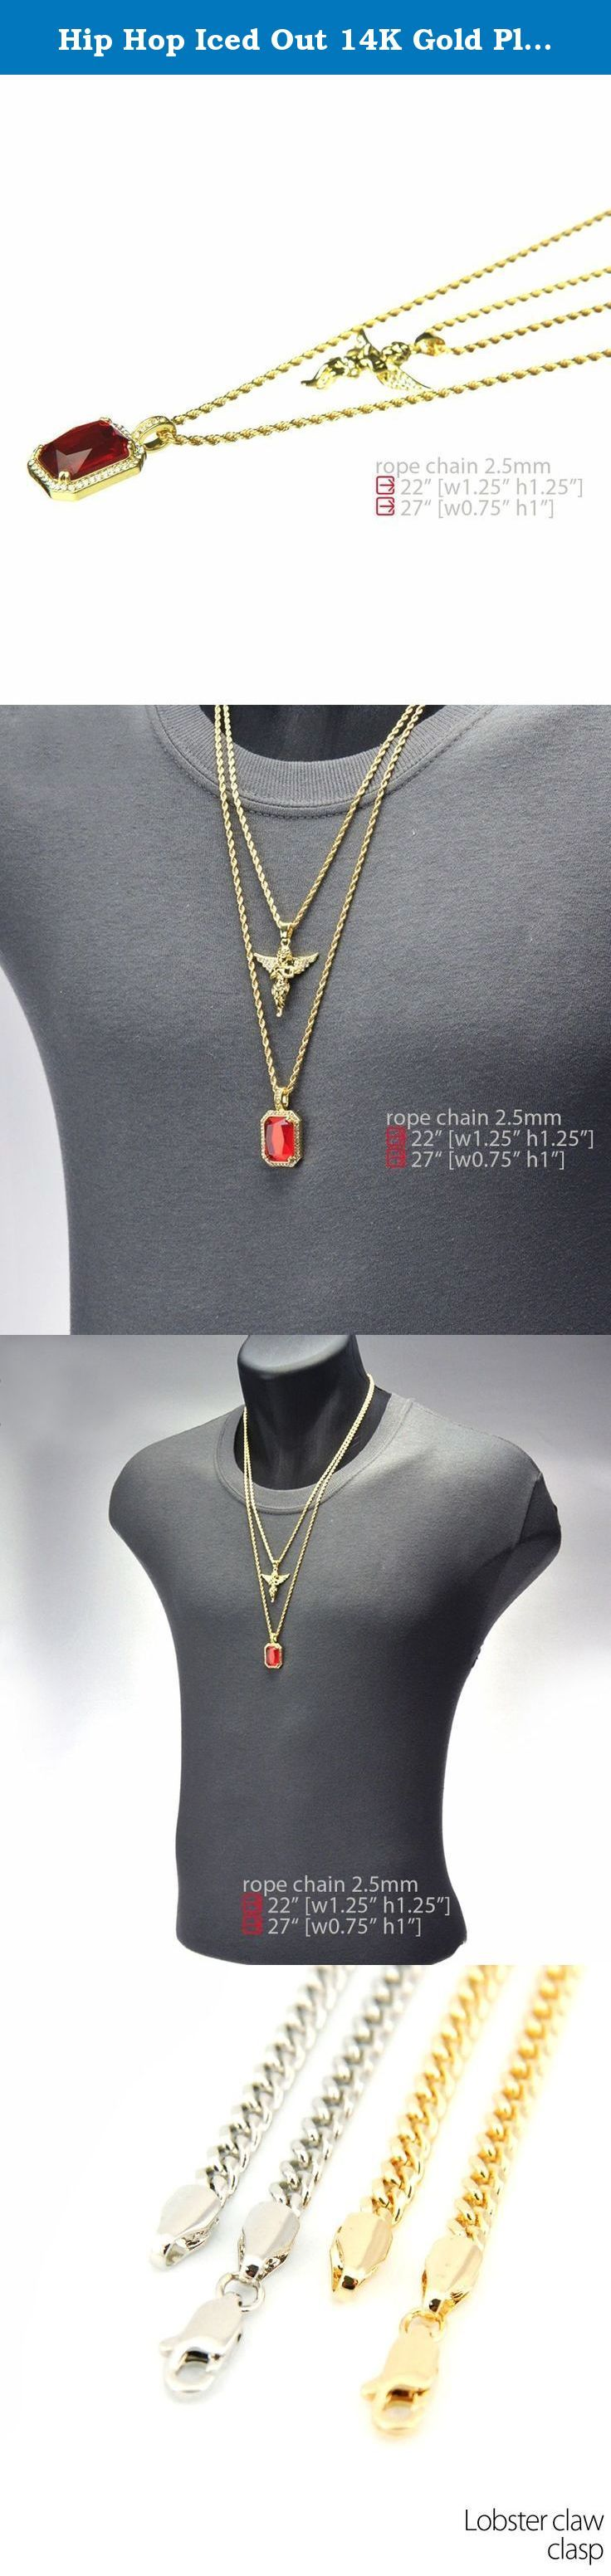 """Hip Hop Iced Out 14K Gold Plated Baby Angel & Red Ruby 22""""&27"""" Combo Pendant Chain MHC 213 G. Two Piece Pendant, Angel & Red Ruby. Chain Length : 22"""" & 27"""" Inches Long x 2.5mm Thin Rope Chain. You Will Receive Two Chains & Two Pendant As A Set (As Seen On Image). 14K IP Gold Plated. Great Quality Jewelry."""